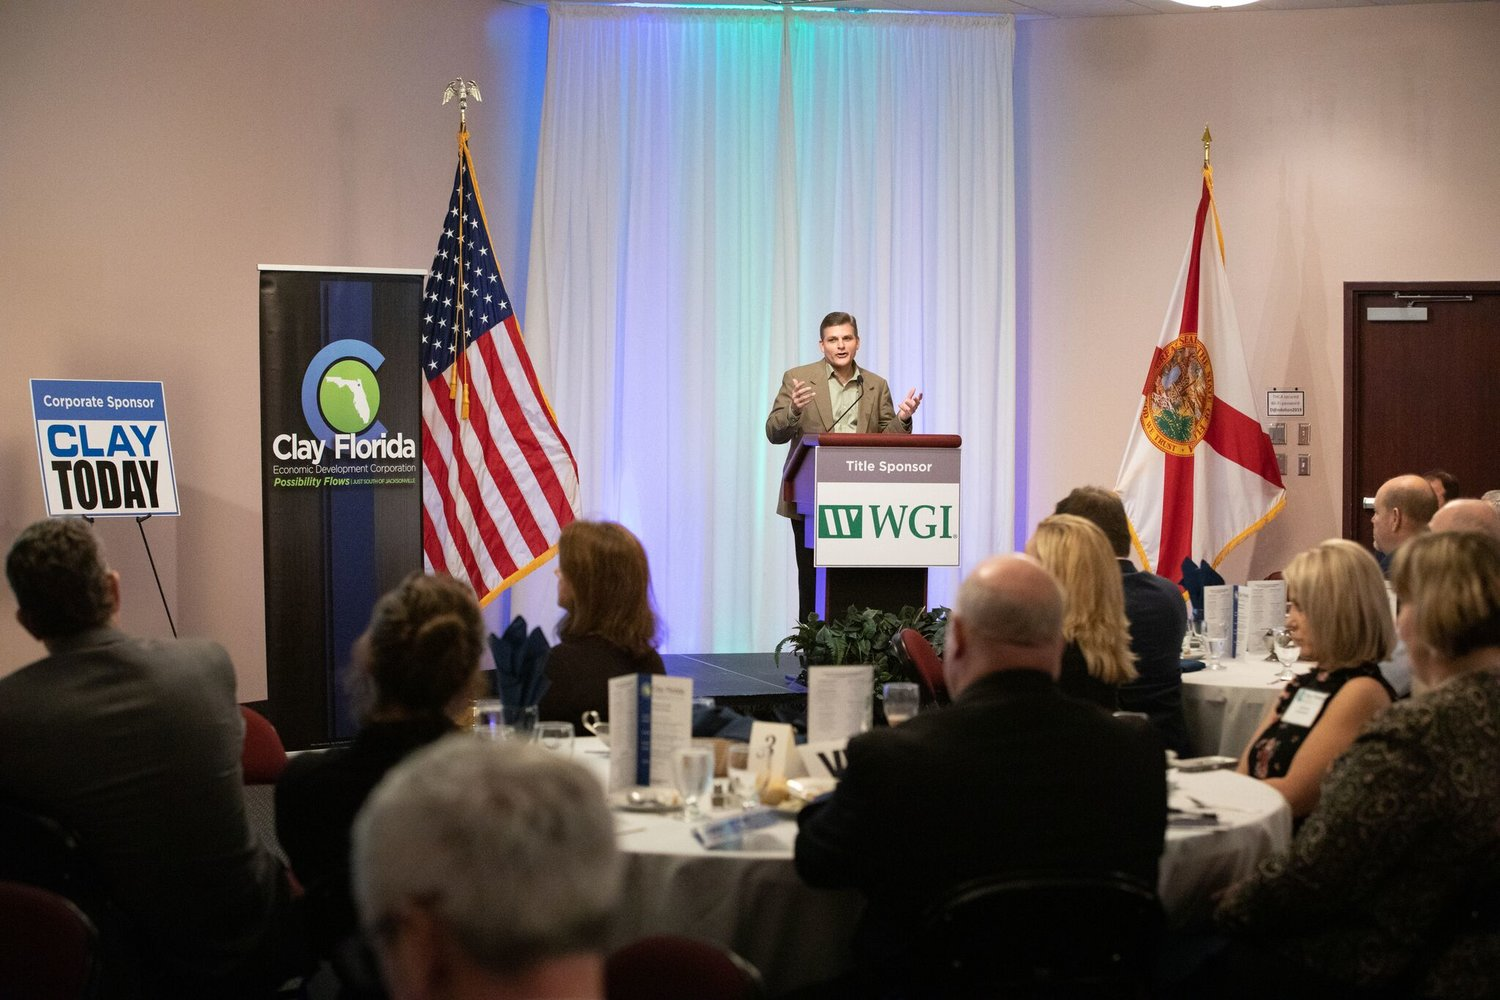 Jeff Sheffield, the Executive Director of Clay EDC and North Florida Transportation Planning Organization, addresses the Clay Florida Economic Development Corporation's Quarterly Meeting last week.